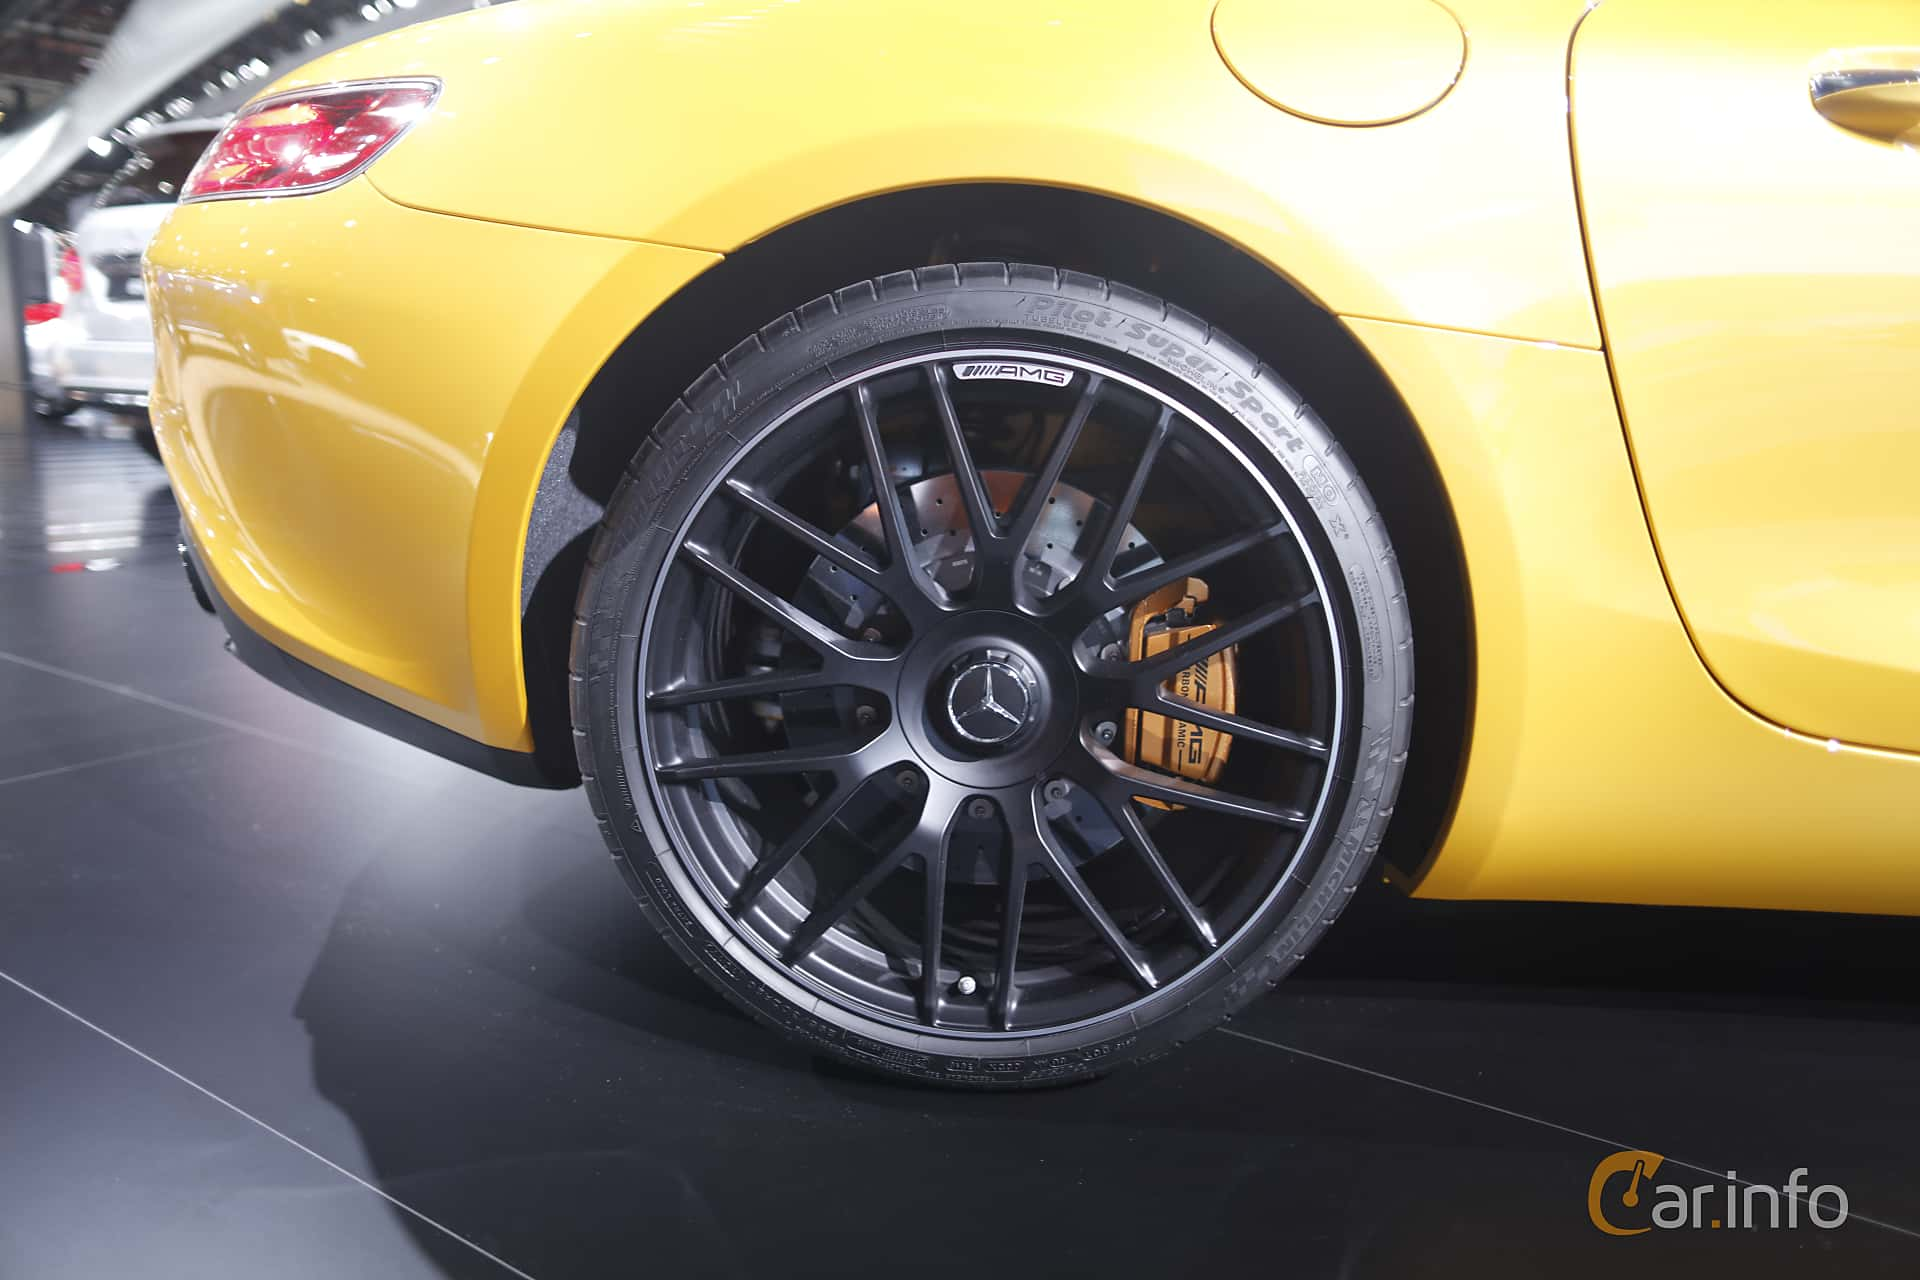 Mercedes-Benz AMG GT S 4.0 V8 AMG Speedshift DCT, 510hp, 375kW, 2017 at North American International Auto Show 2017